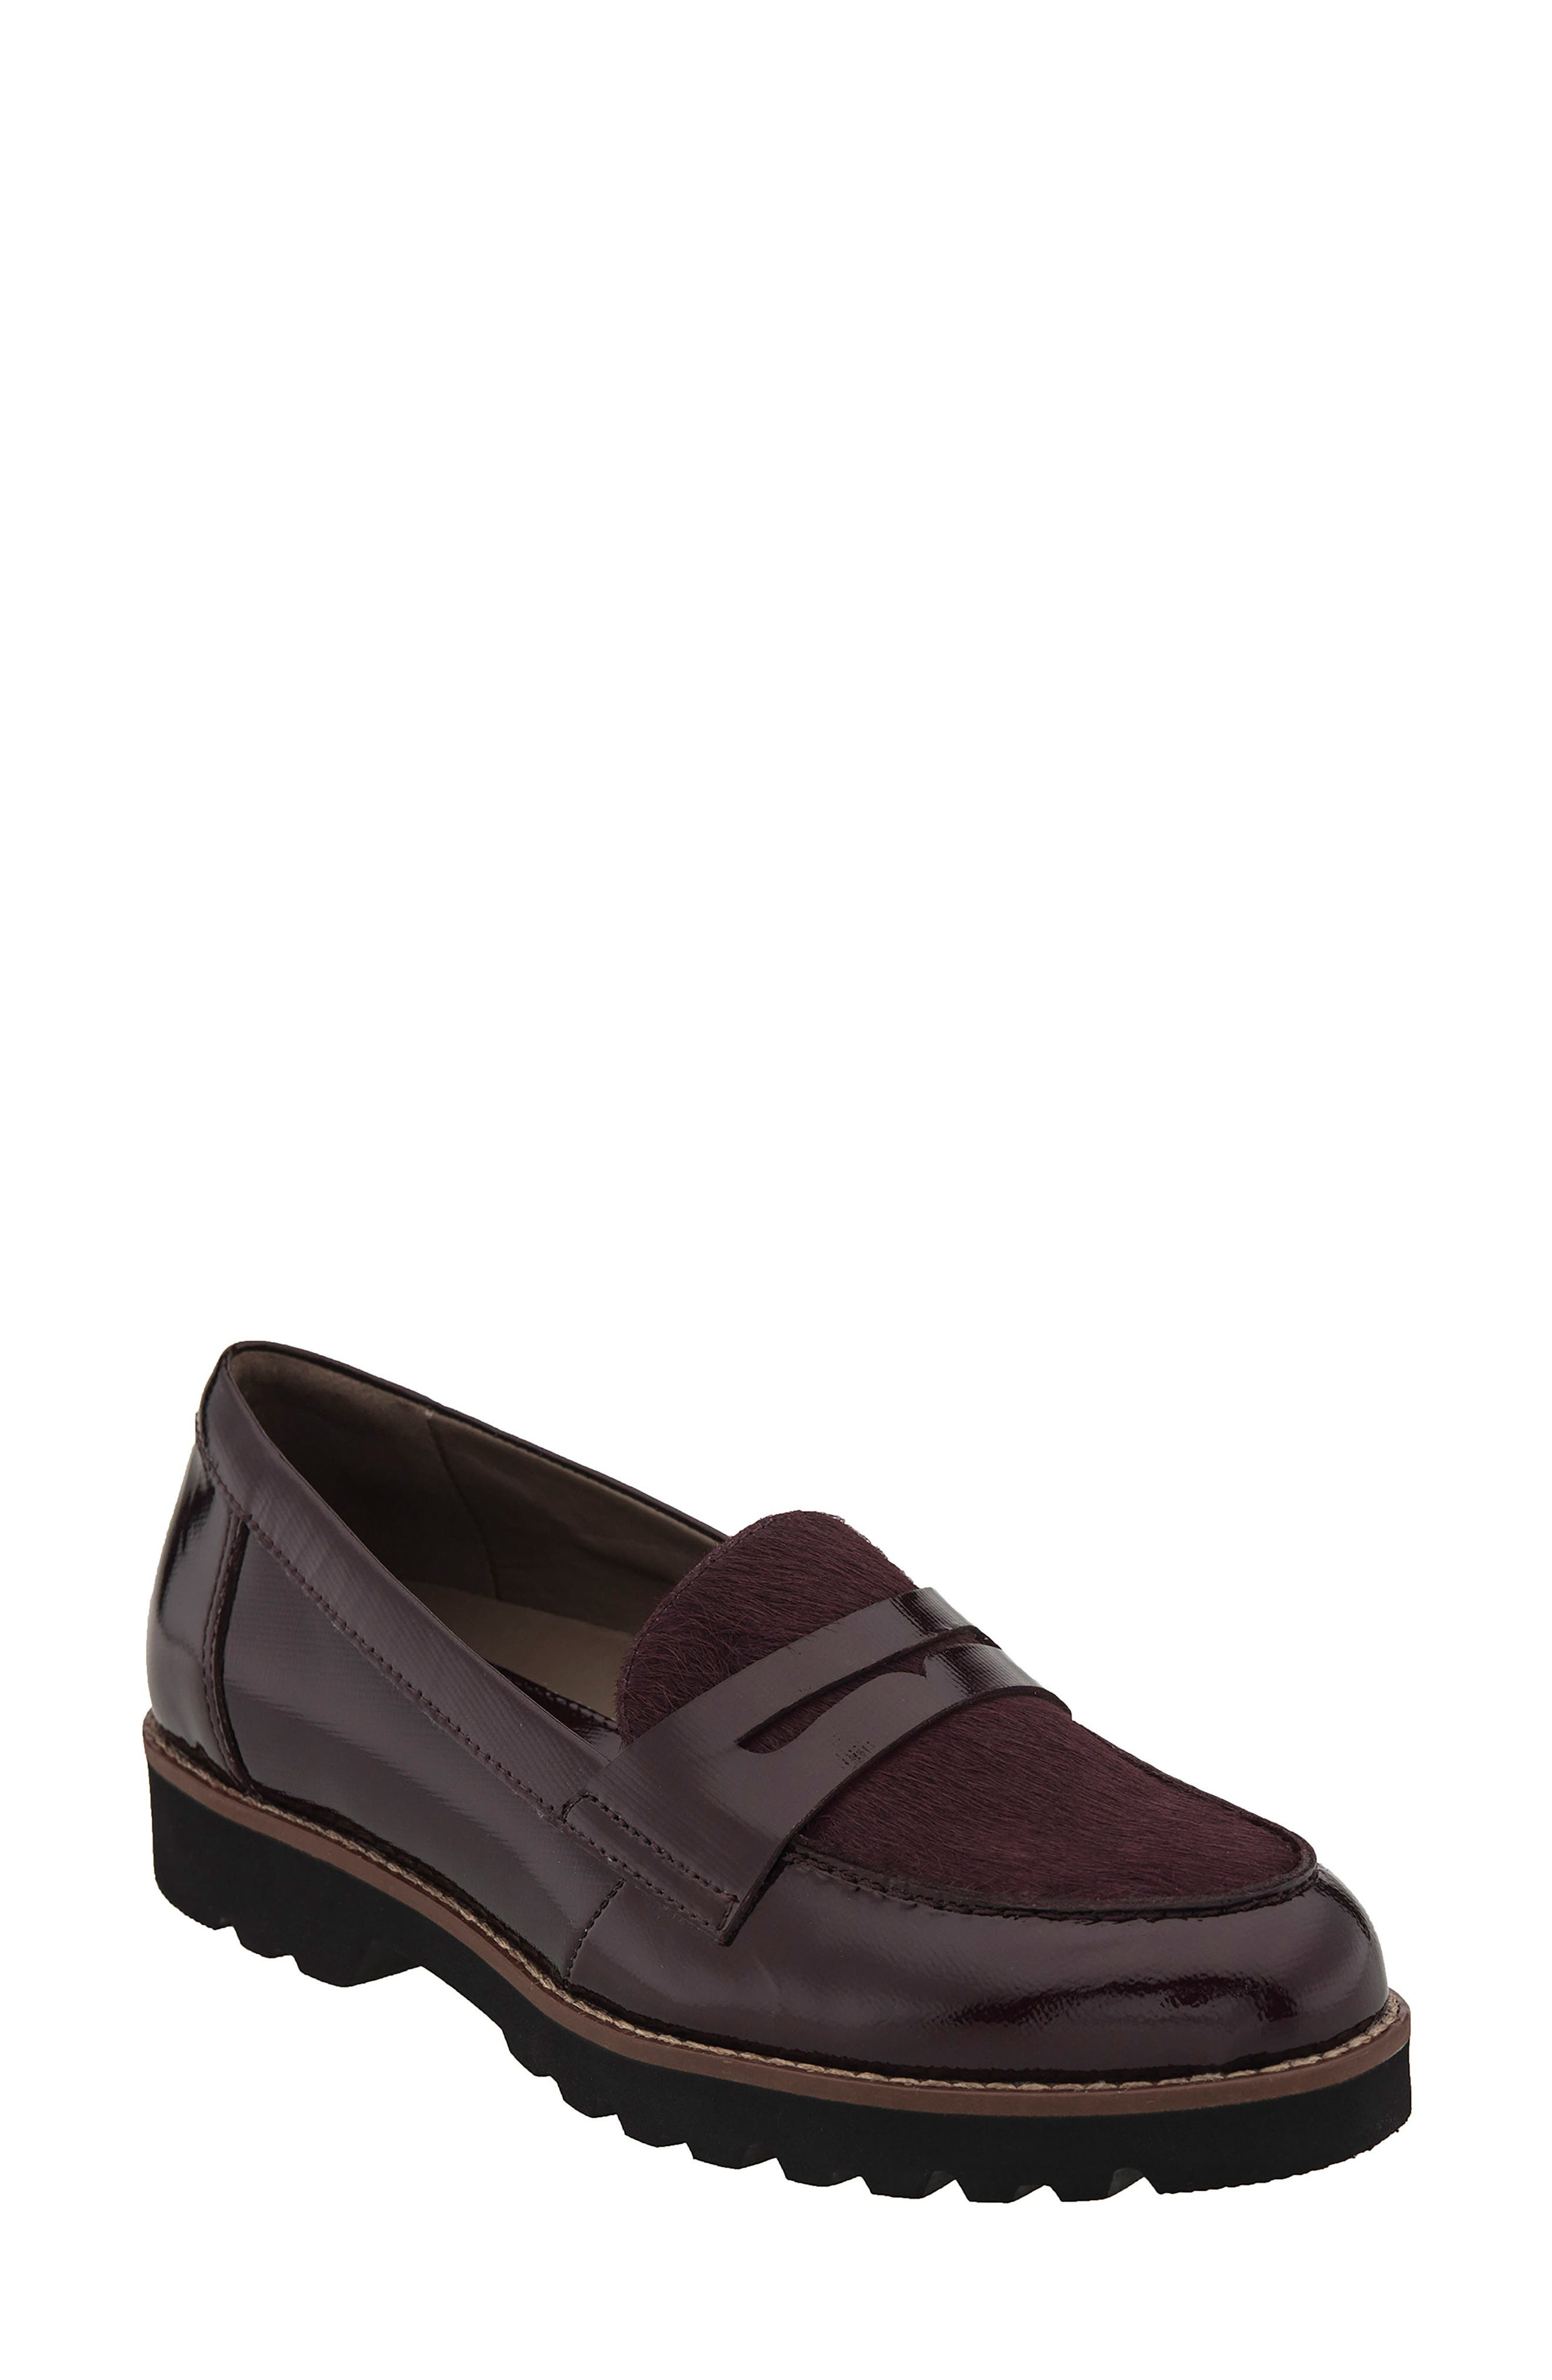 Earthies Braga Leather & Genuine Calf Hair Loafer (Women)